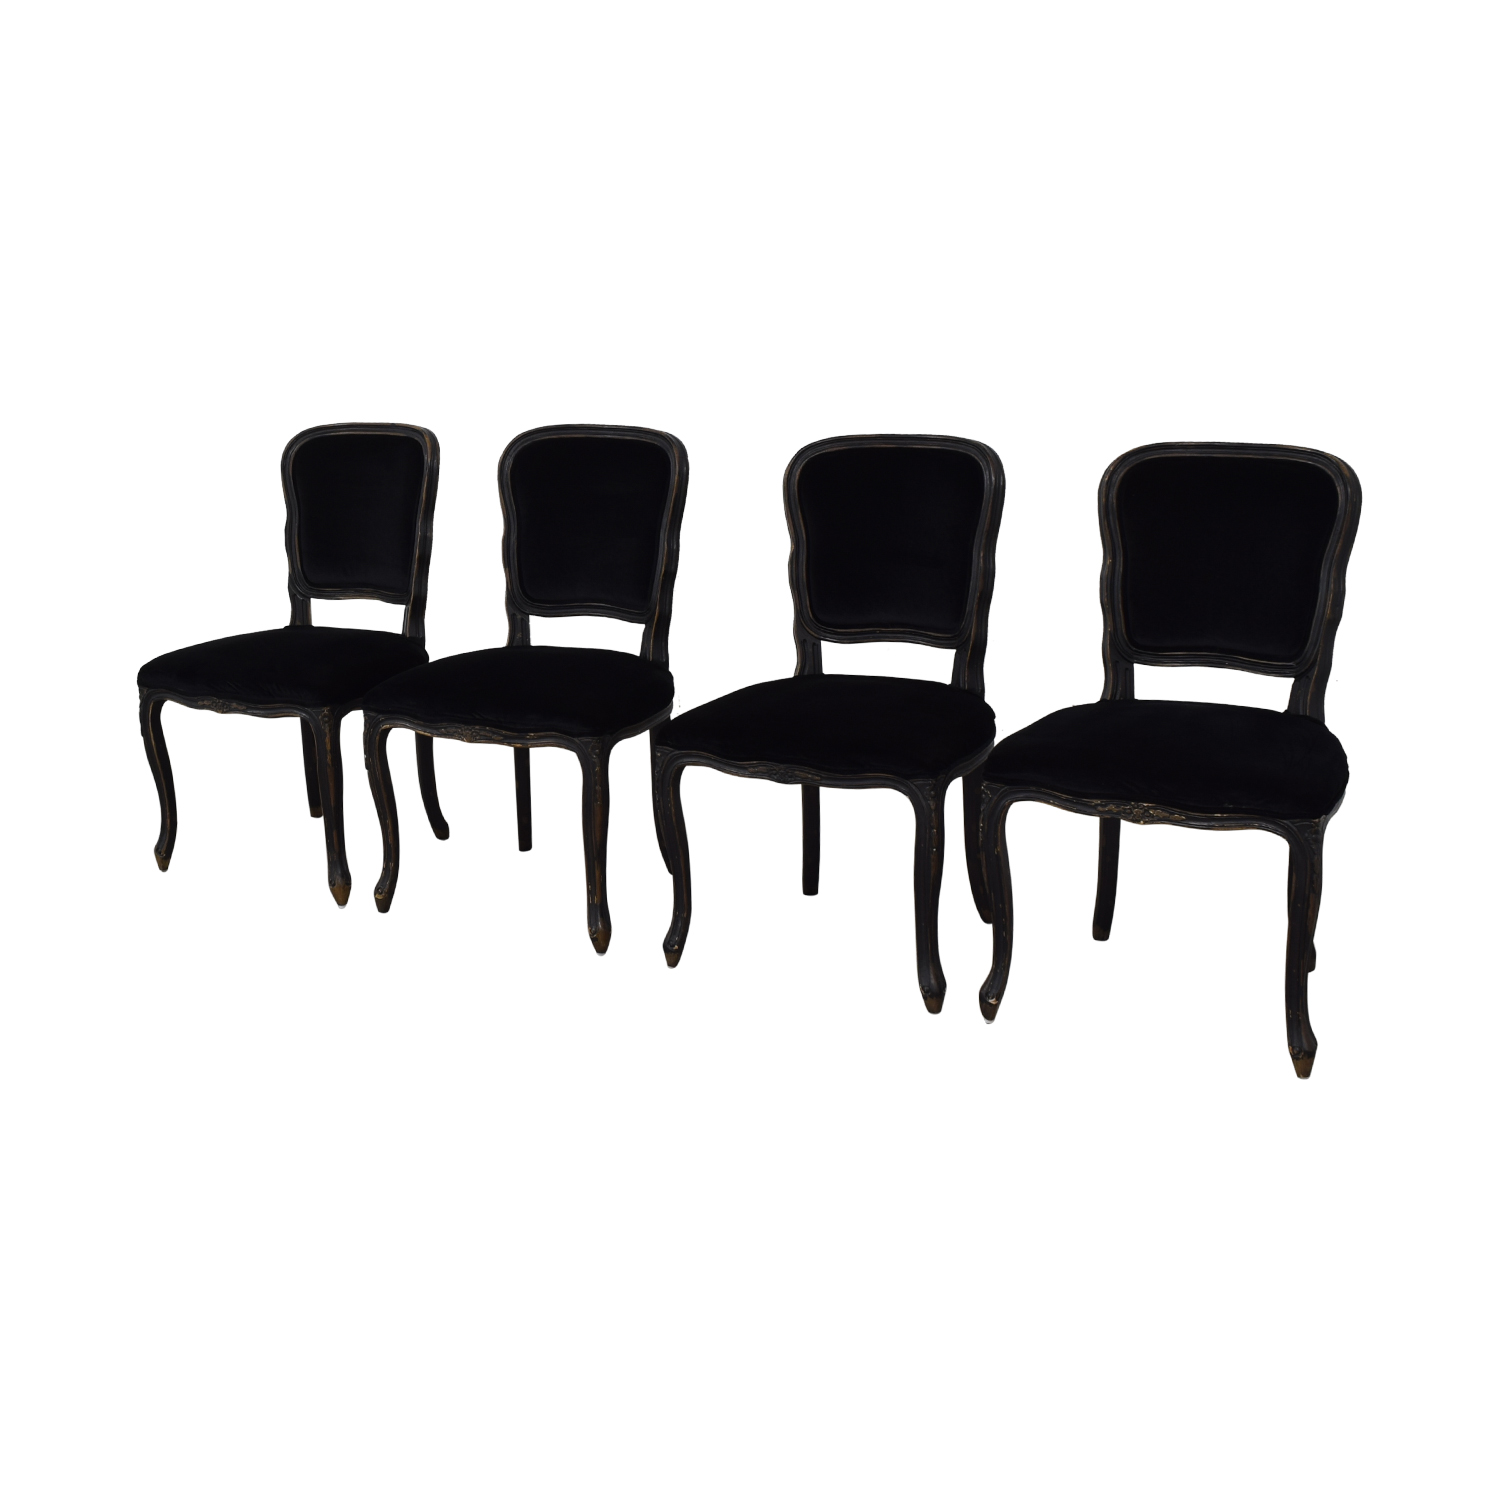 Parker House Dining Chairs on sale